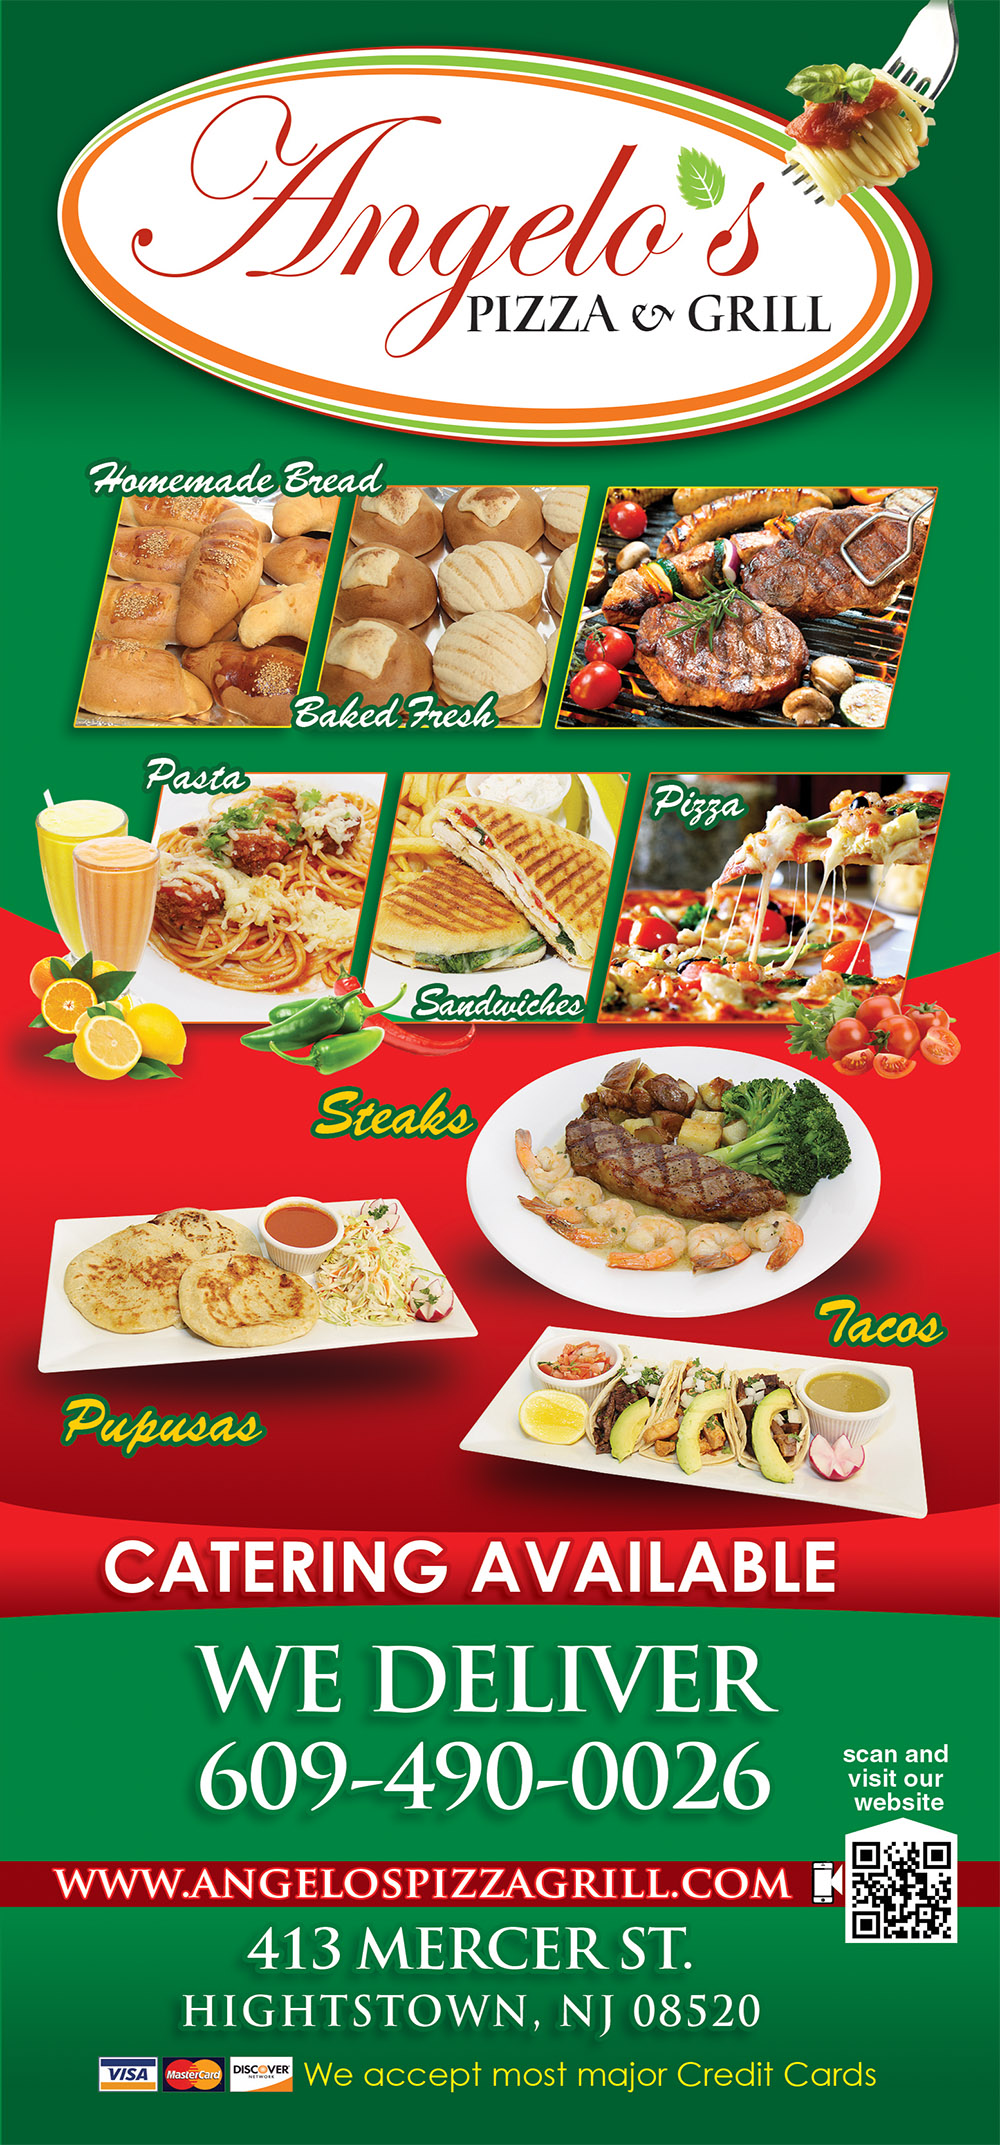 Angelo's Pizza Menu Frontpage